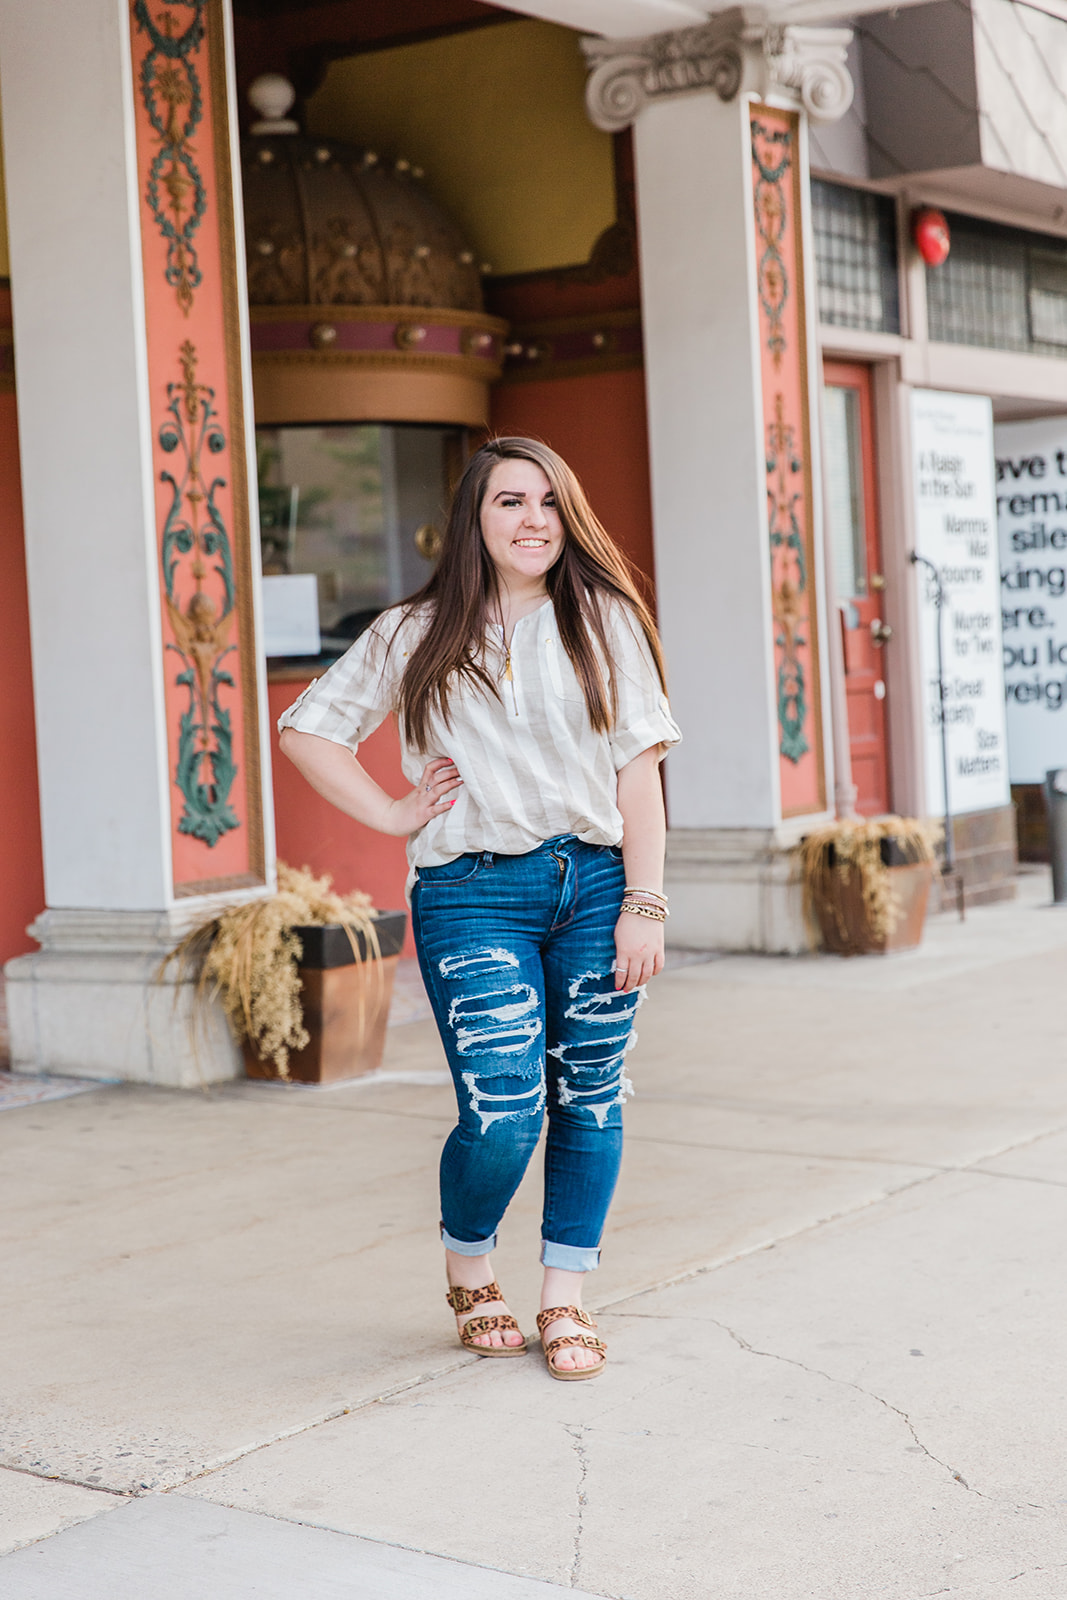 Senior pictures. Class of 2019. High school graduation. Logan Utah senior class pictures. Professional photography. Happy to be done with high school. Main street photos. Excited for the next phase of life. Time to start Cosmetology school. #Mainstreetphotos #senioryear #seniorphotos #congratulations #classof2019 #graduation #highschool #highschoolphotography #pinkwall #excitedtobedone